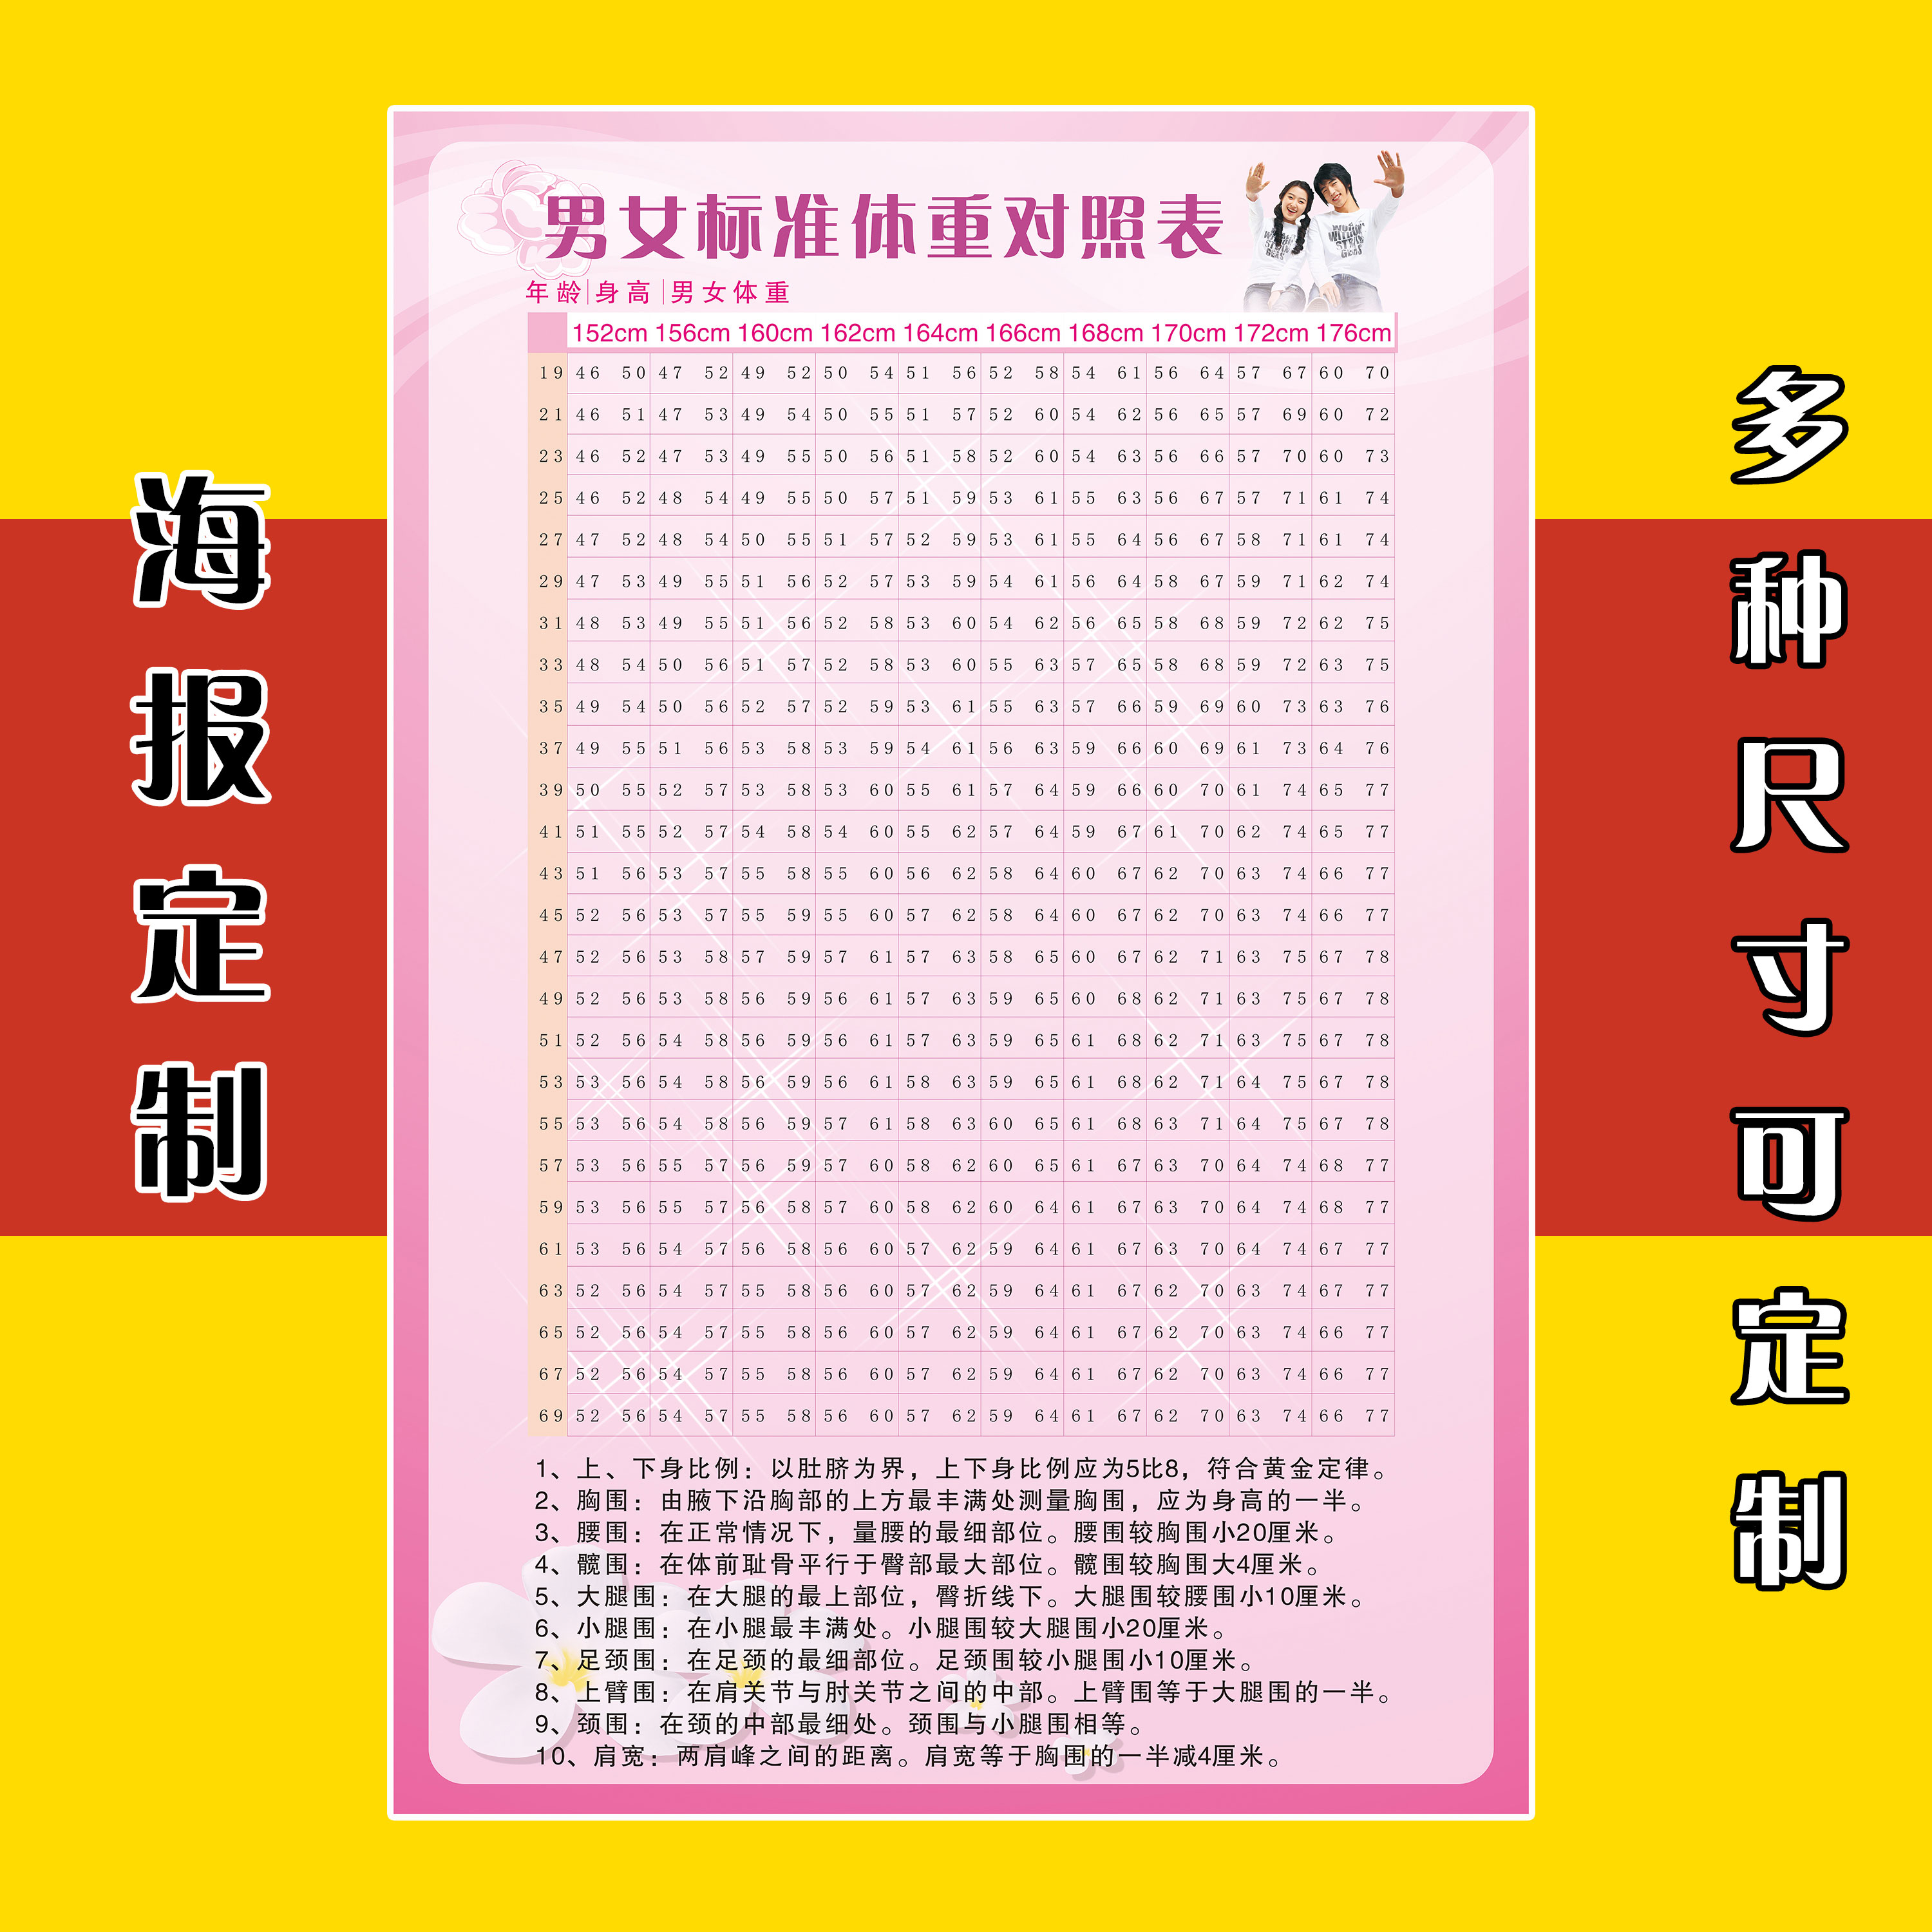 Usd 781 asian adult men and women standard height weight table asian adult men and women standard height weight table weight loss beauty salon club slim wall chart wall stickers 0008 nvjuhfo Gallery